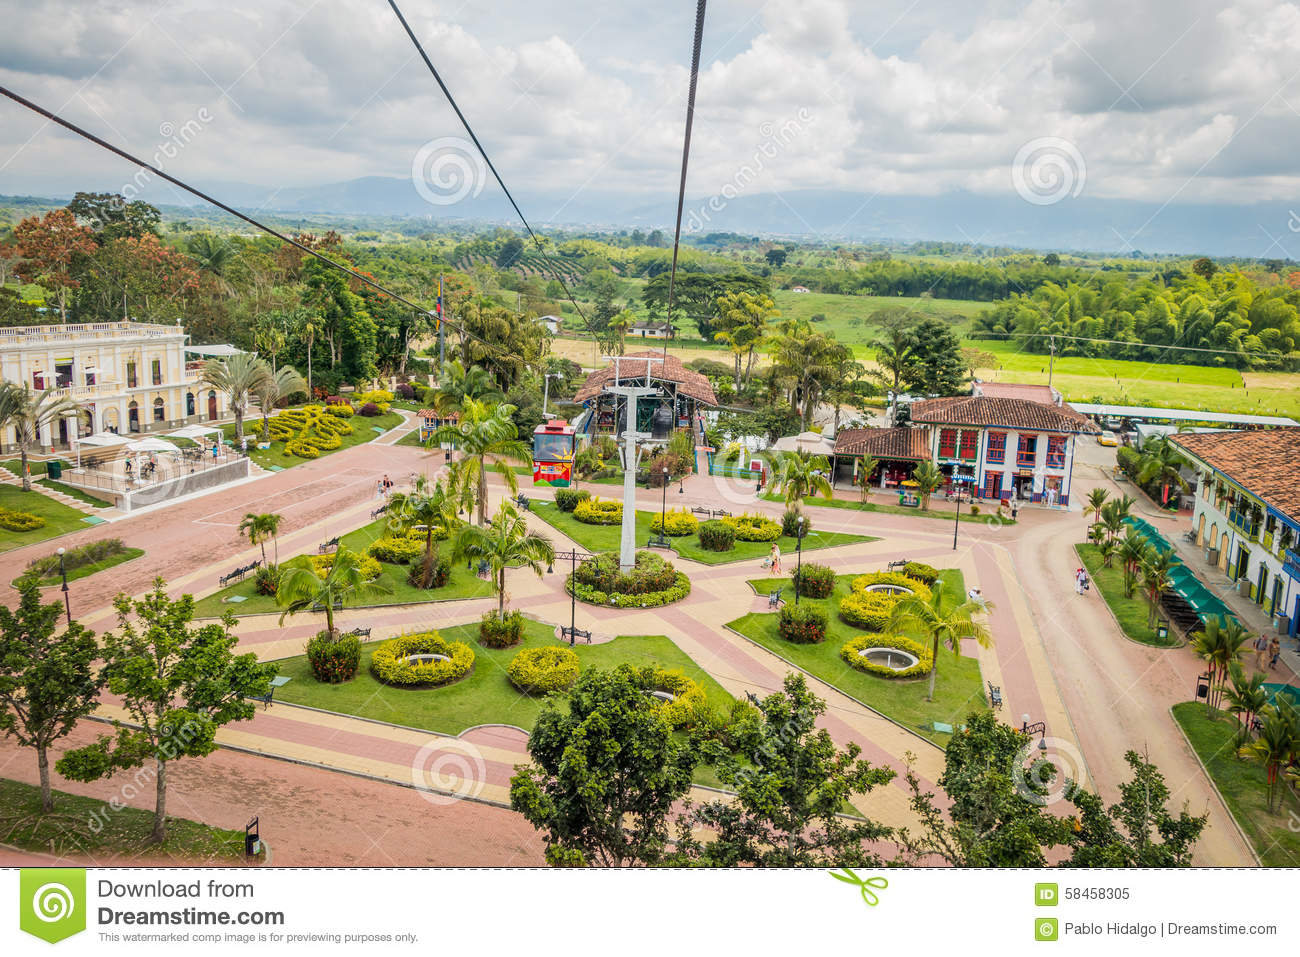 NATIONAL COFFEE PARK, COLOMBIA, Downward view of